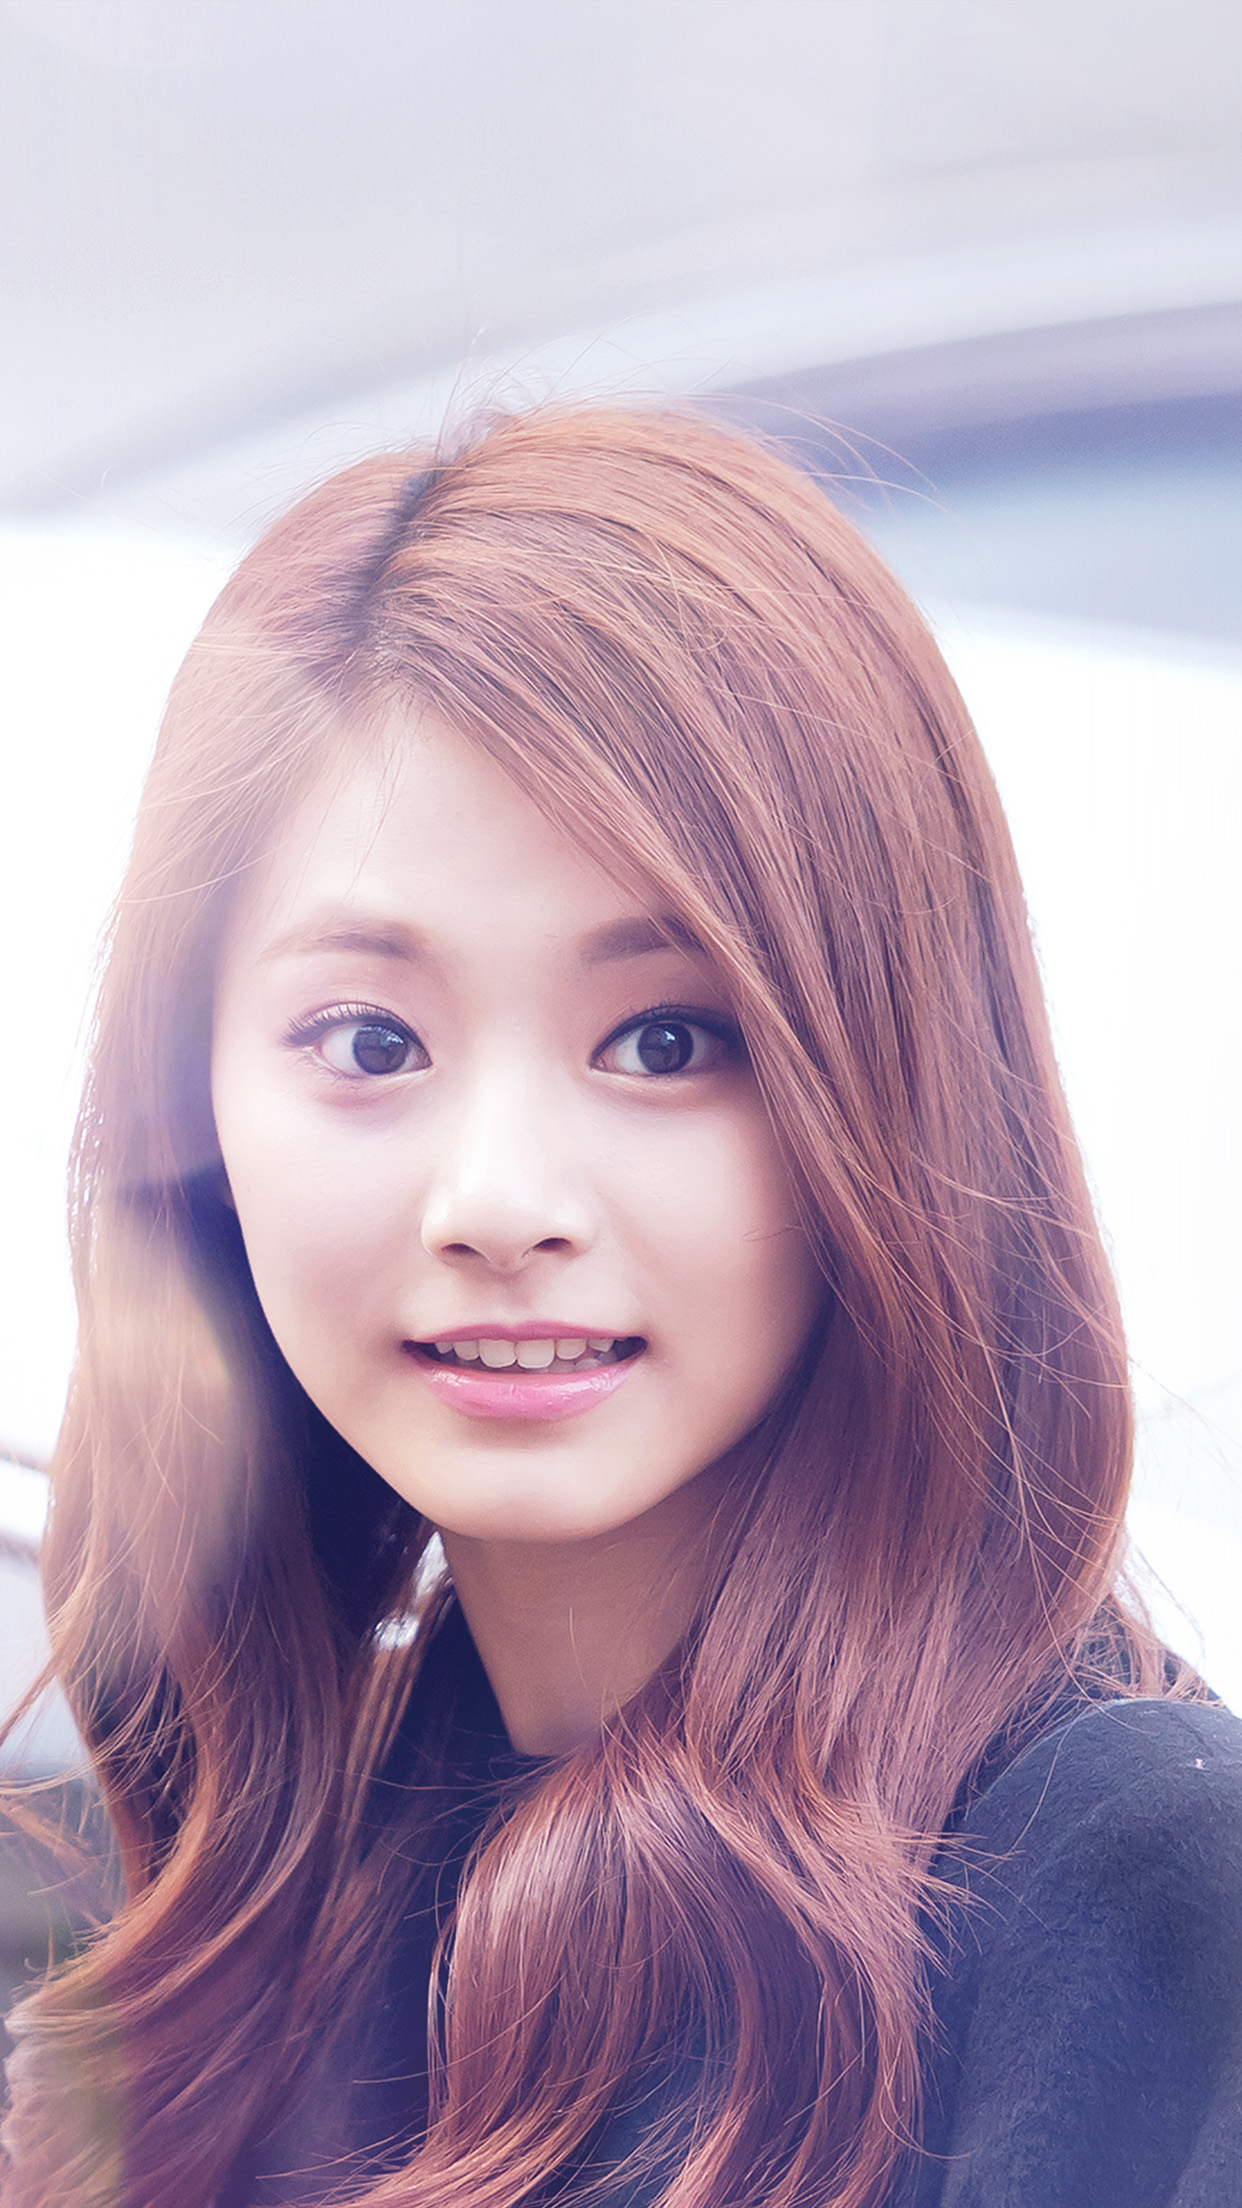 Hd Game Wallpapers For Iphone 6 Hh33 Tzuyu Twice Smile Cute Kpop Jyp Flare Wallpaper